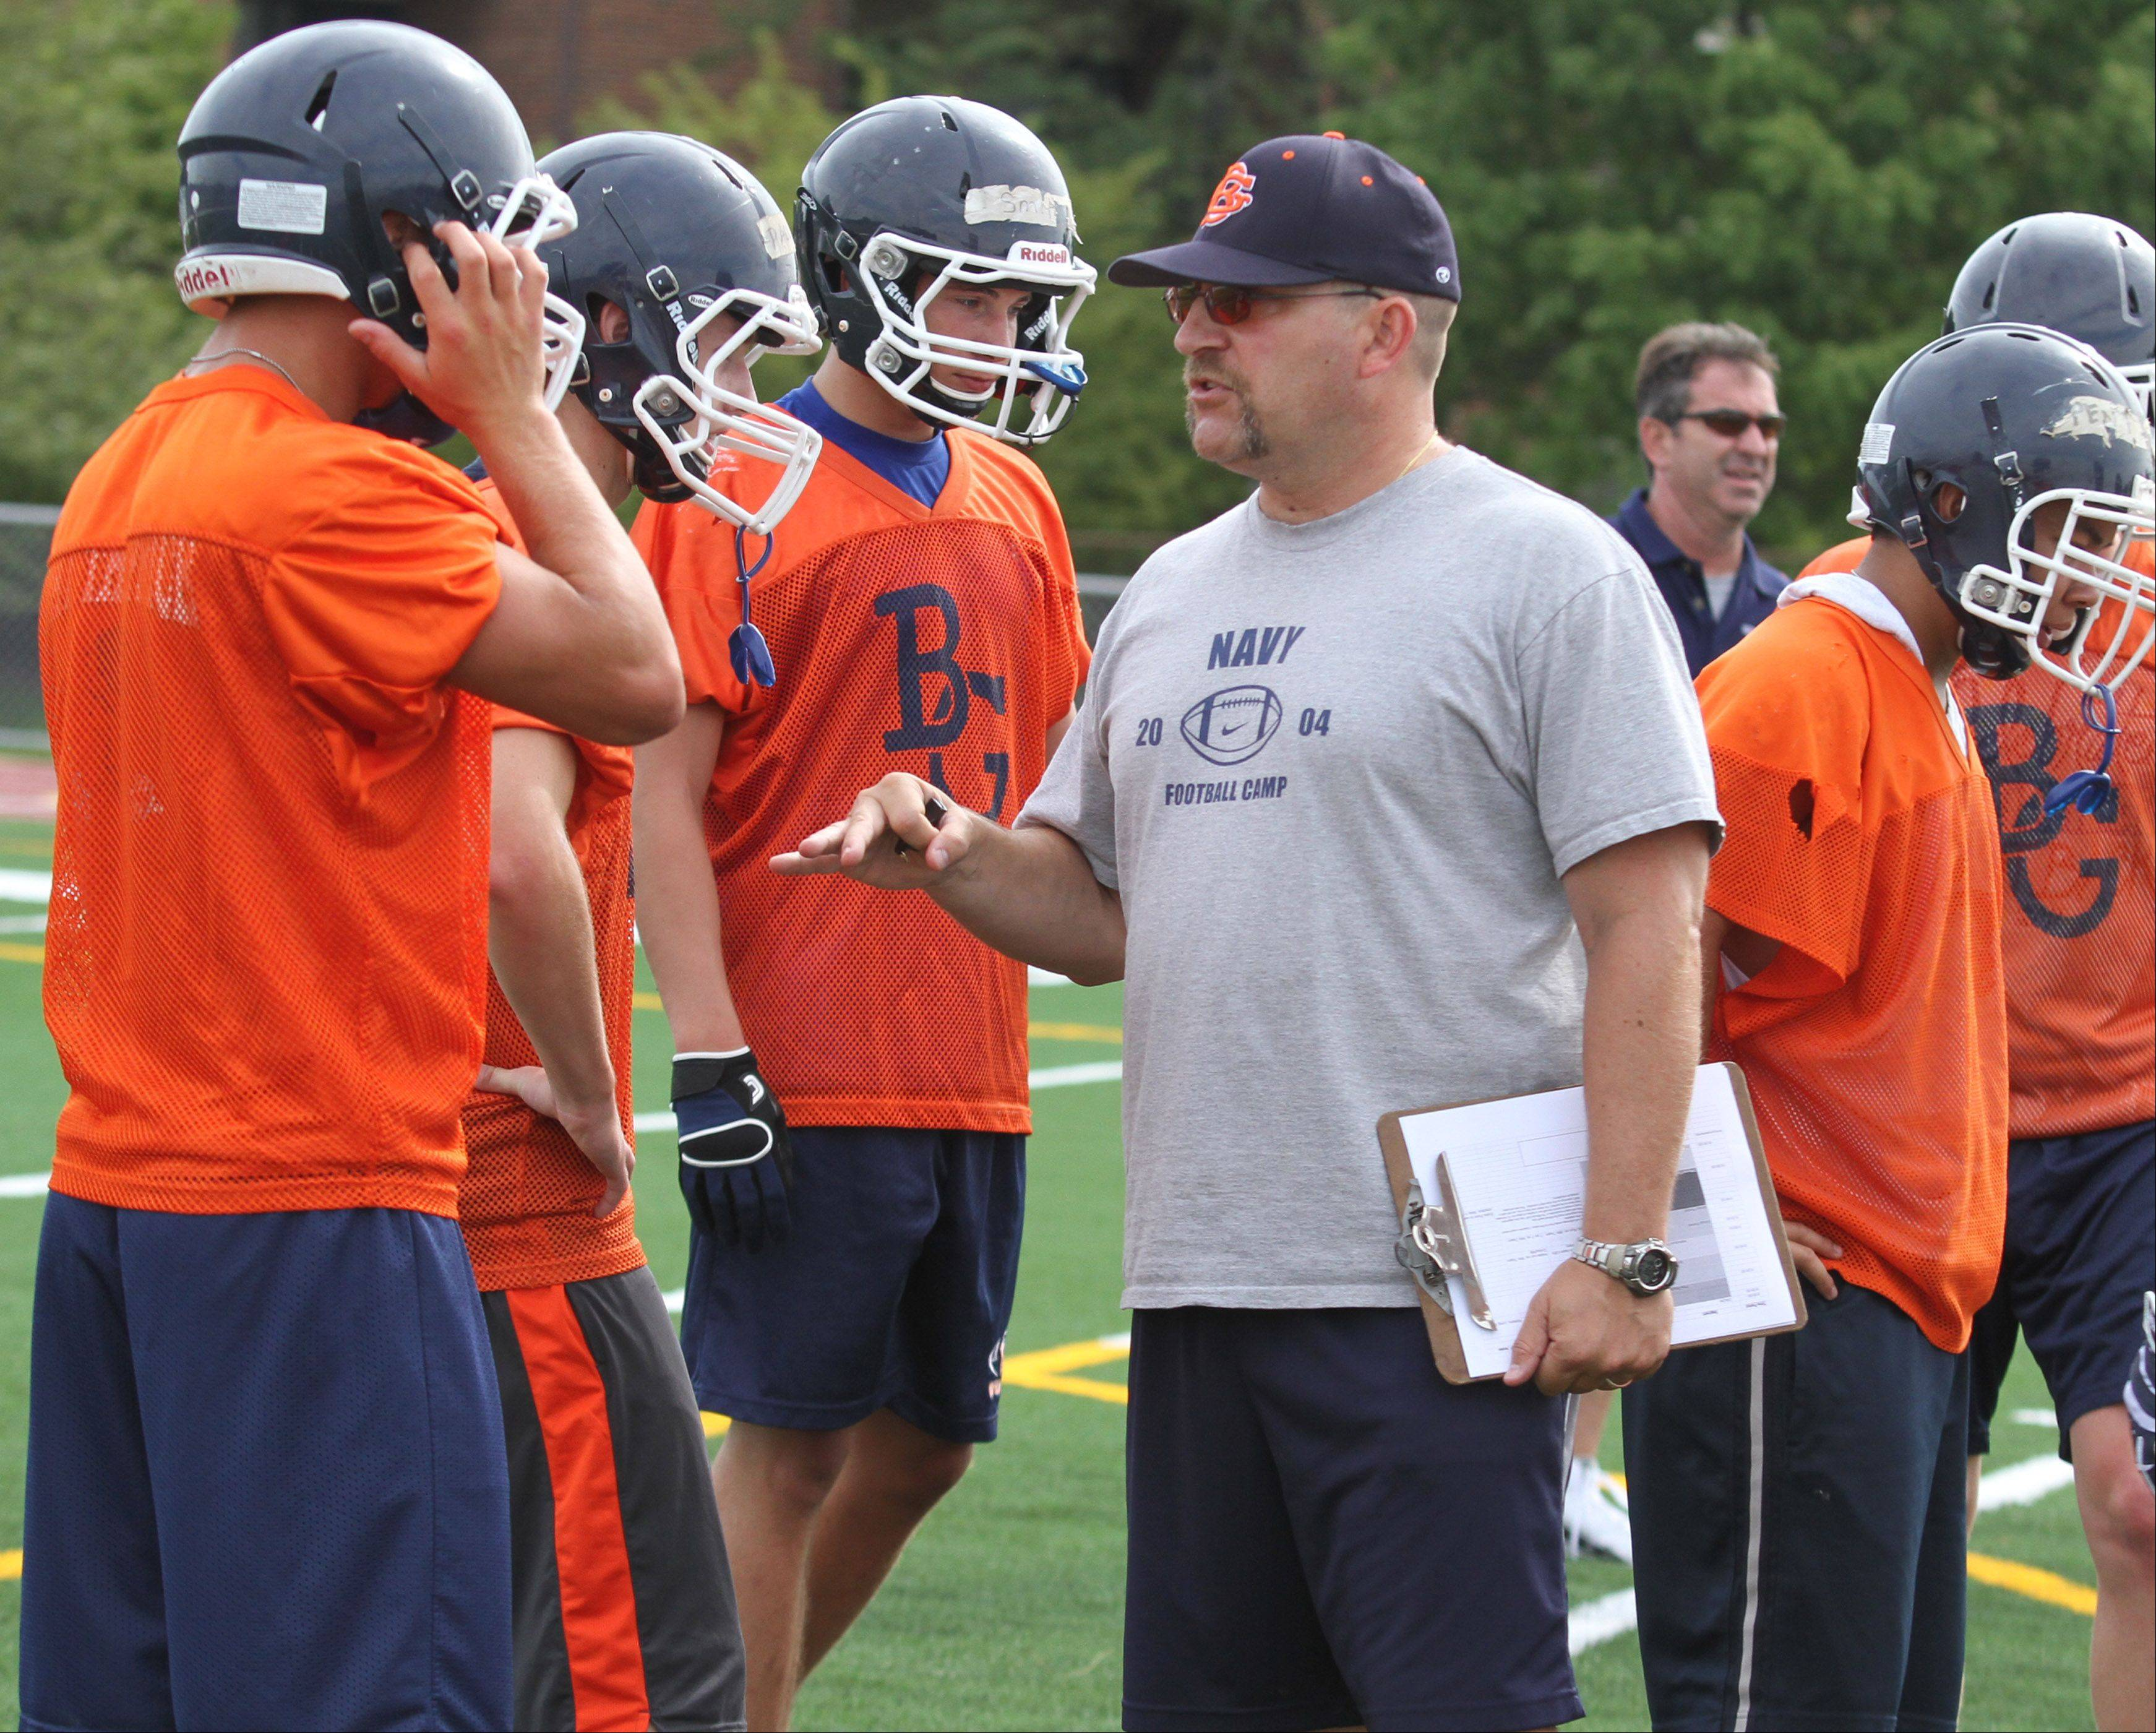 Buffalo Grove's new head coach, Mike DiMatteo, runs his first day of practice Wednesday.